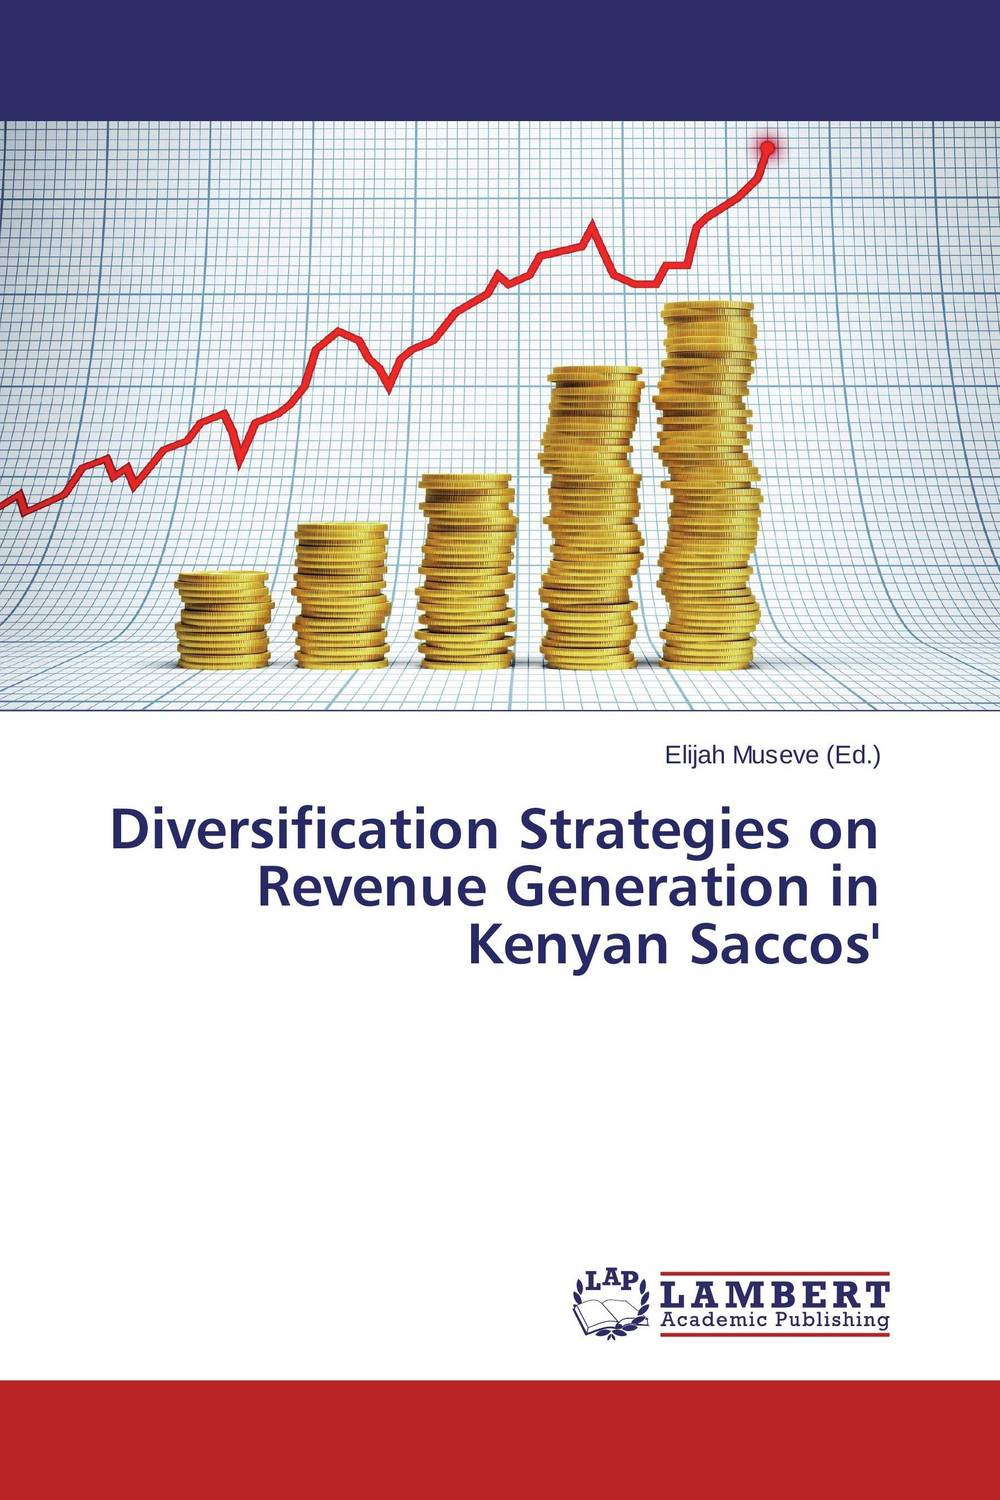 Diversification Strategies on Revenue Generation in Kenyan Saccos' the operative